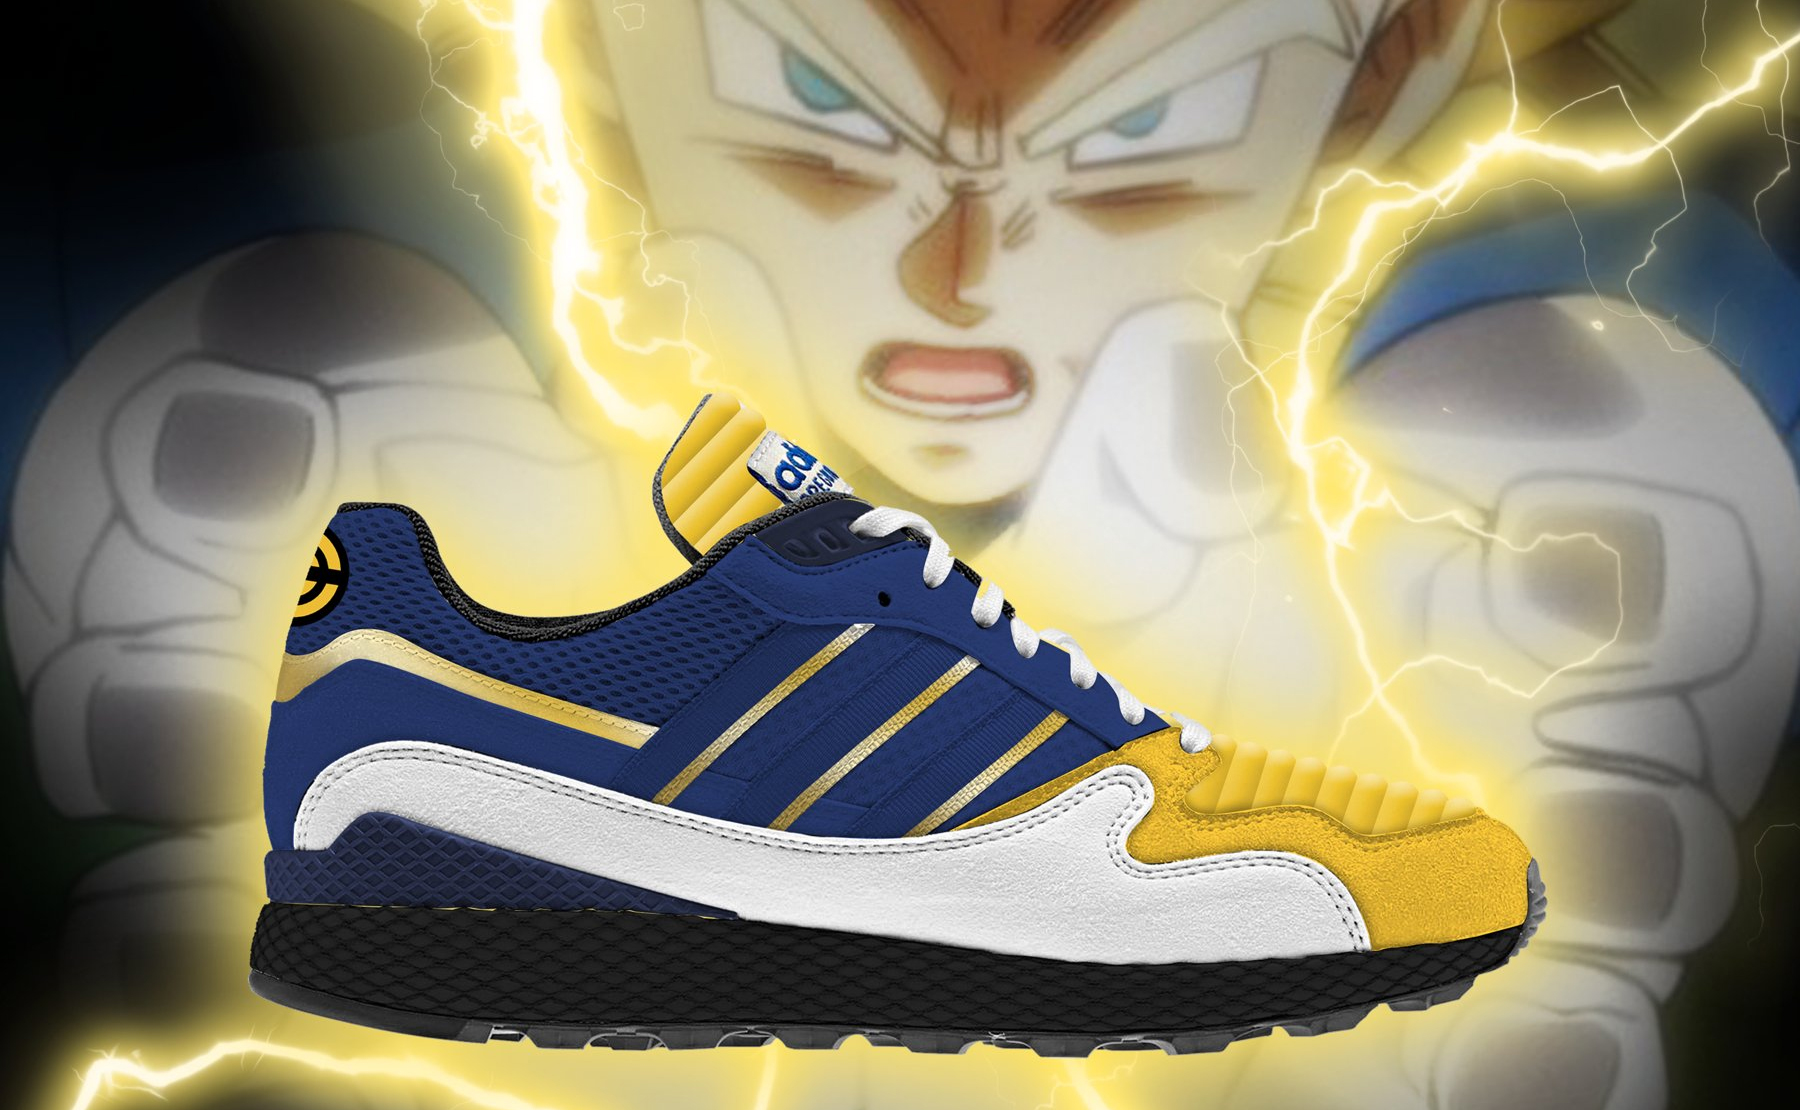 new arrival 4541b e7d21 Adidas releasing Dragon Ball Z-inspired shoes this August